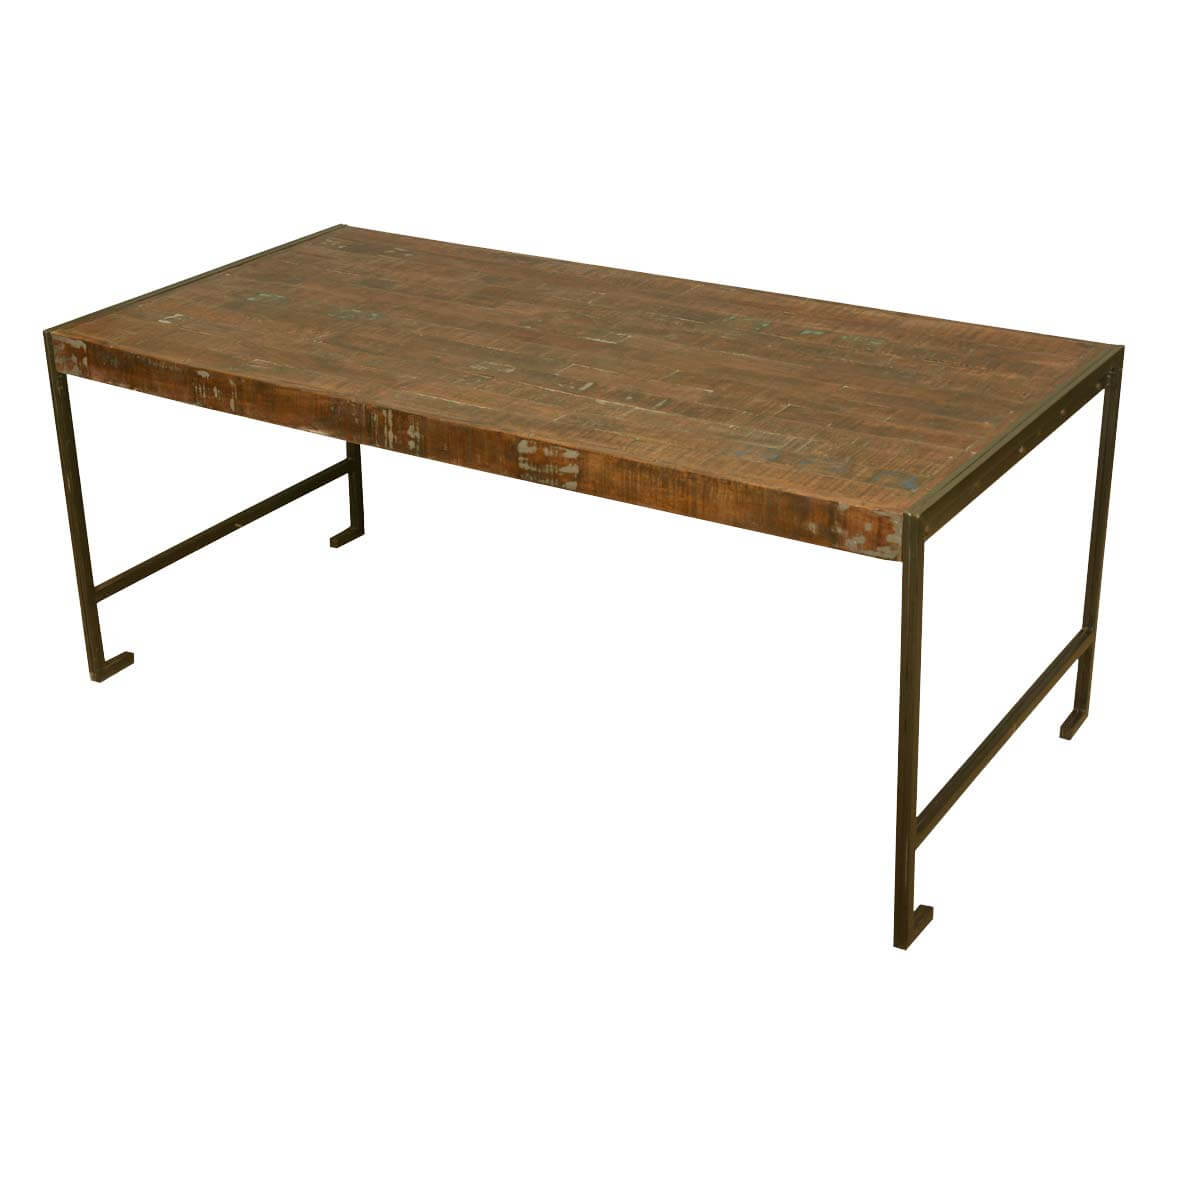 Philadelphia modern rustic reclaimed wood industrial for Contemporary wood dining table